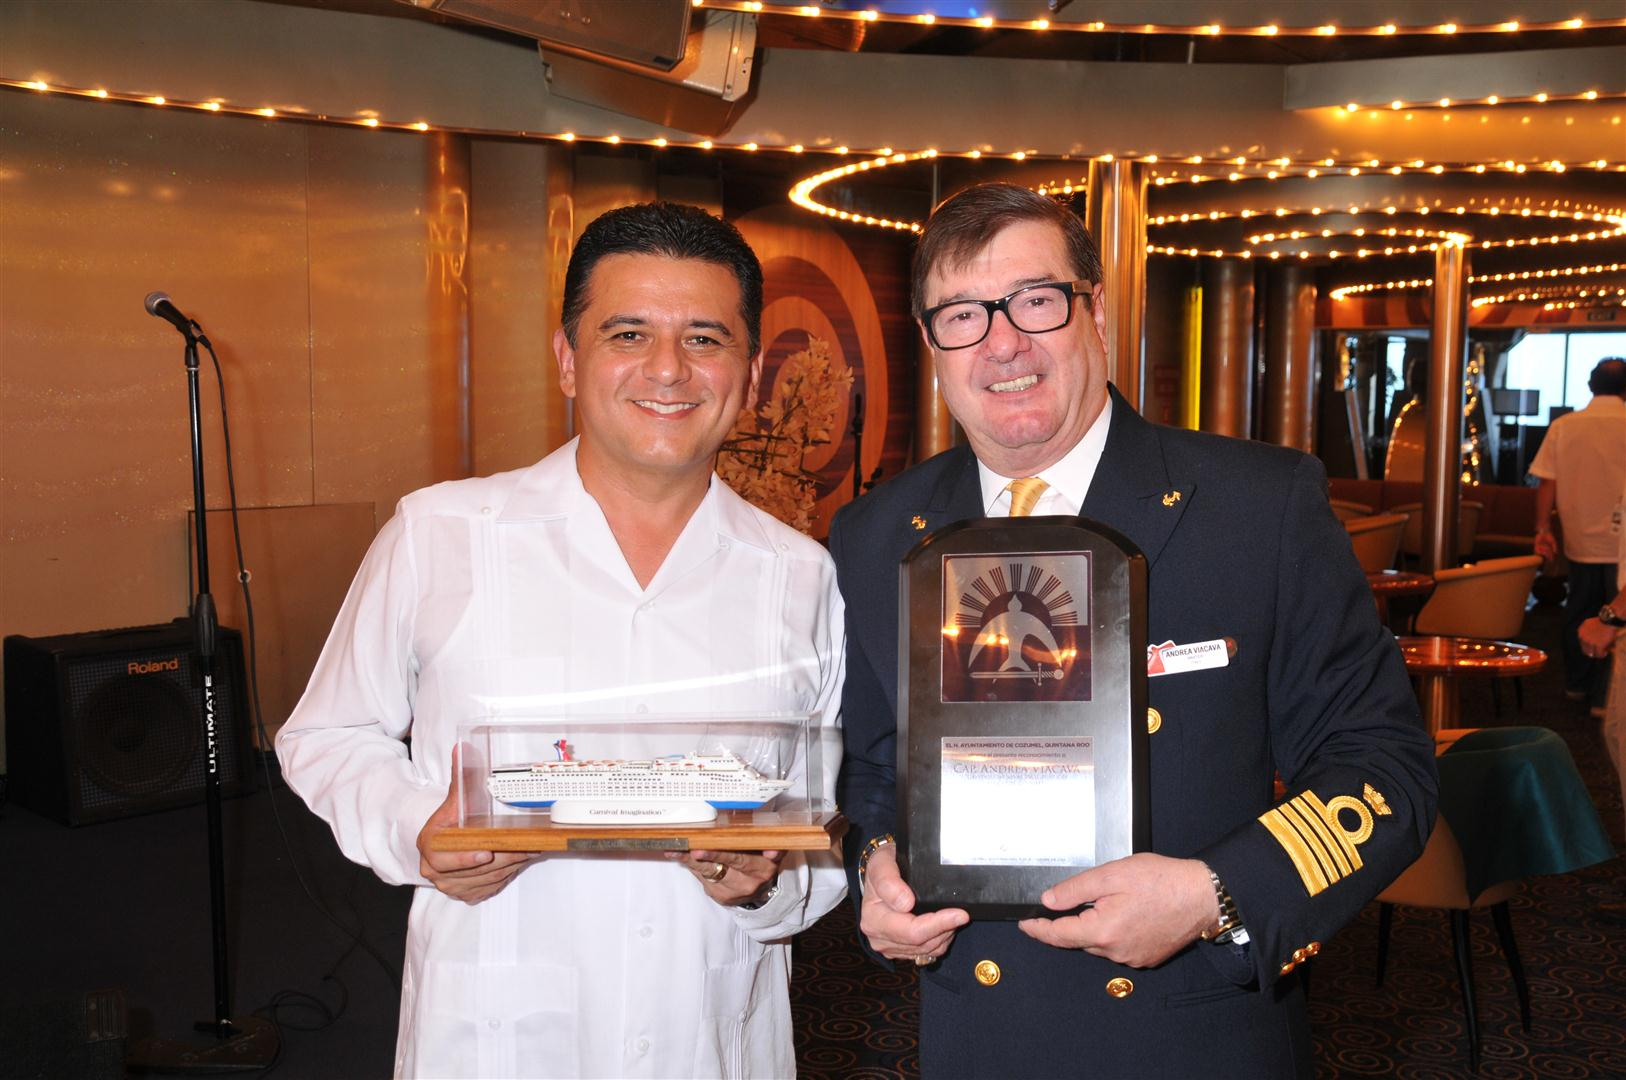 Carnival Imagination Captain Accepts 'Friends of Cozumel' Award From City's Mayor